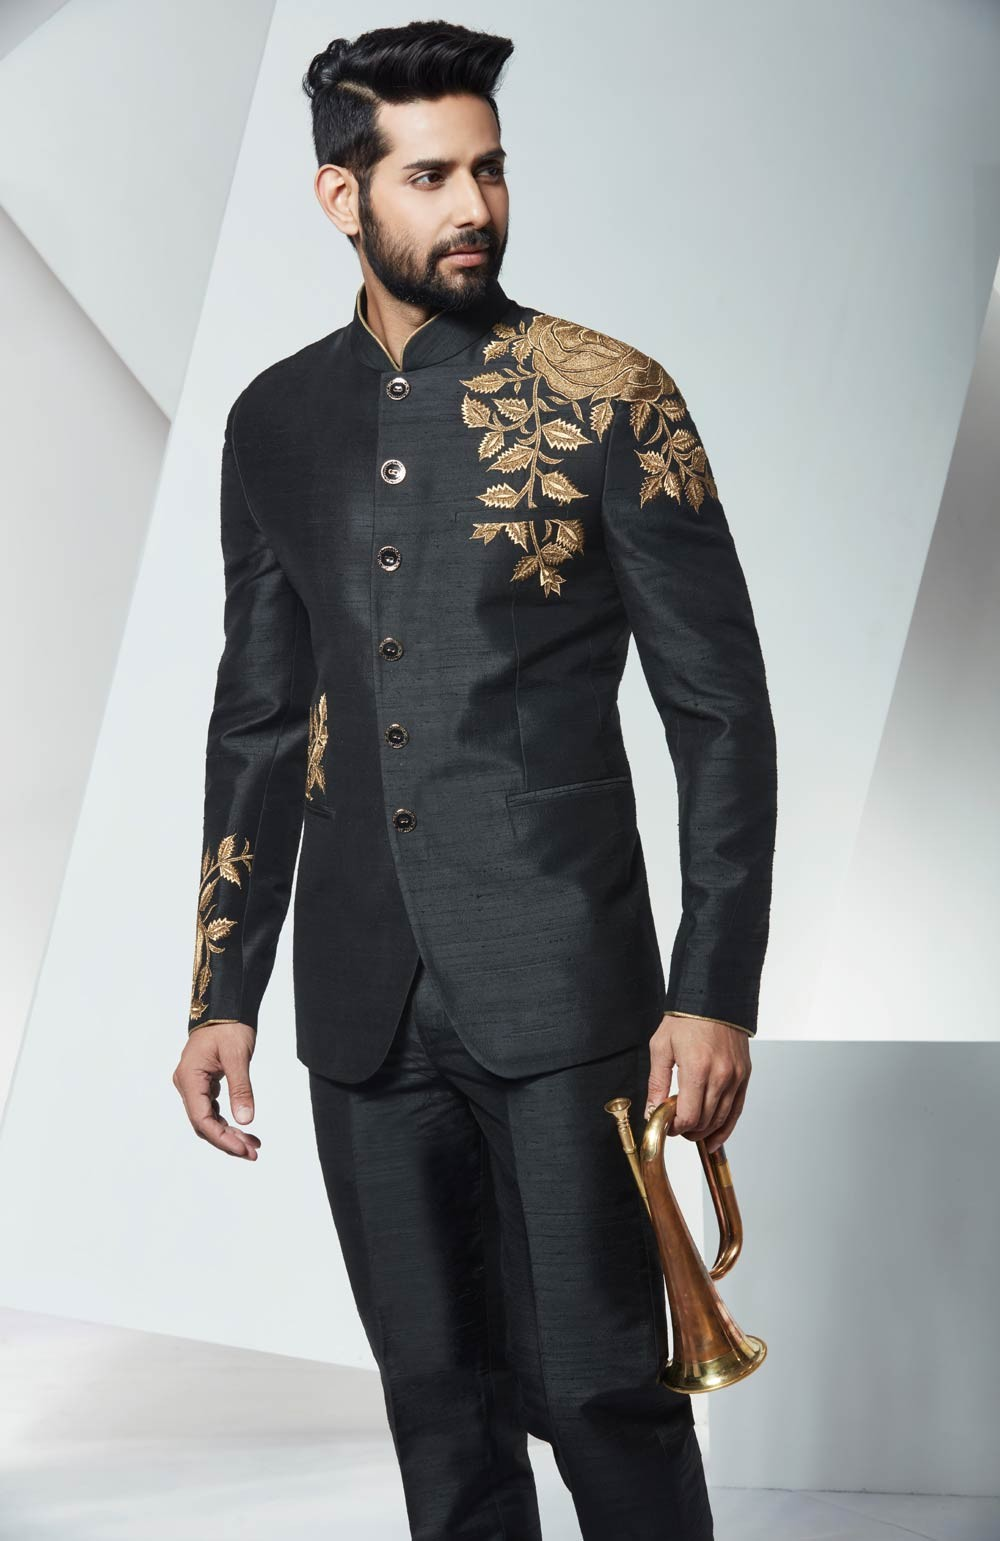 Suits for men online: Suits for every Event - Parivar Ceremony